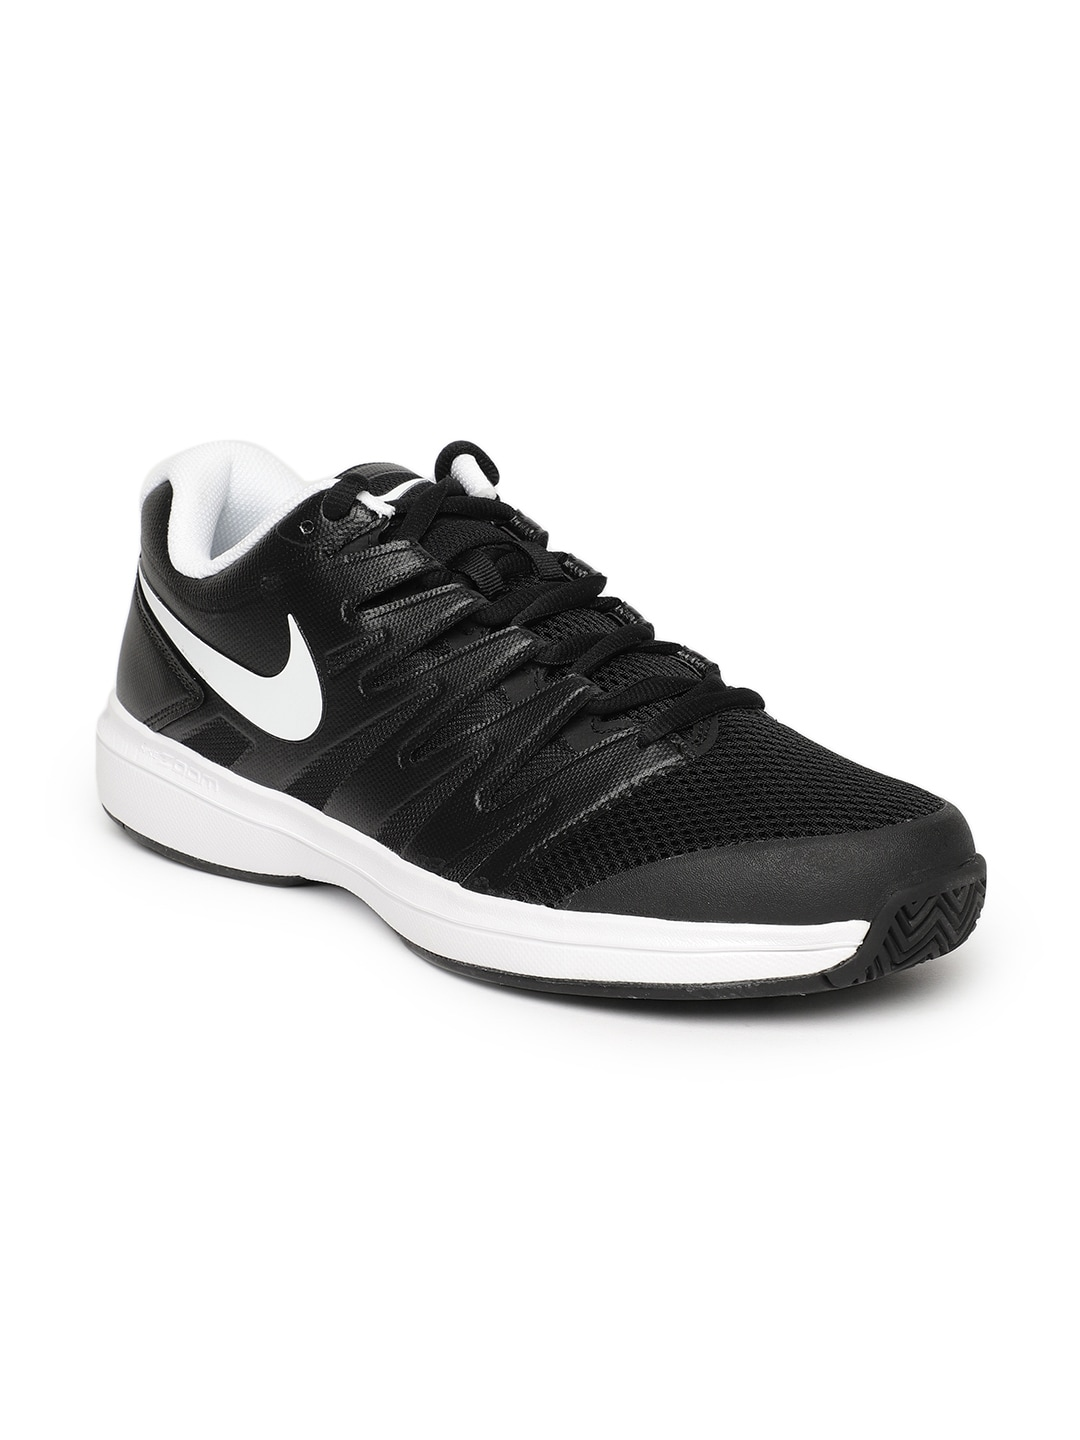 quality design ed18d a43e0 Nike Tennis Shoes   Buy Nike Tennis Shoes Online in India at Best Price